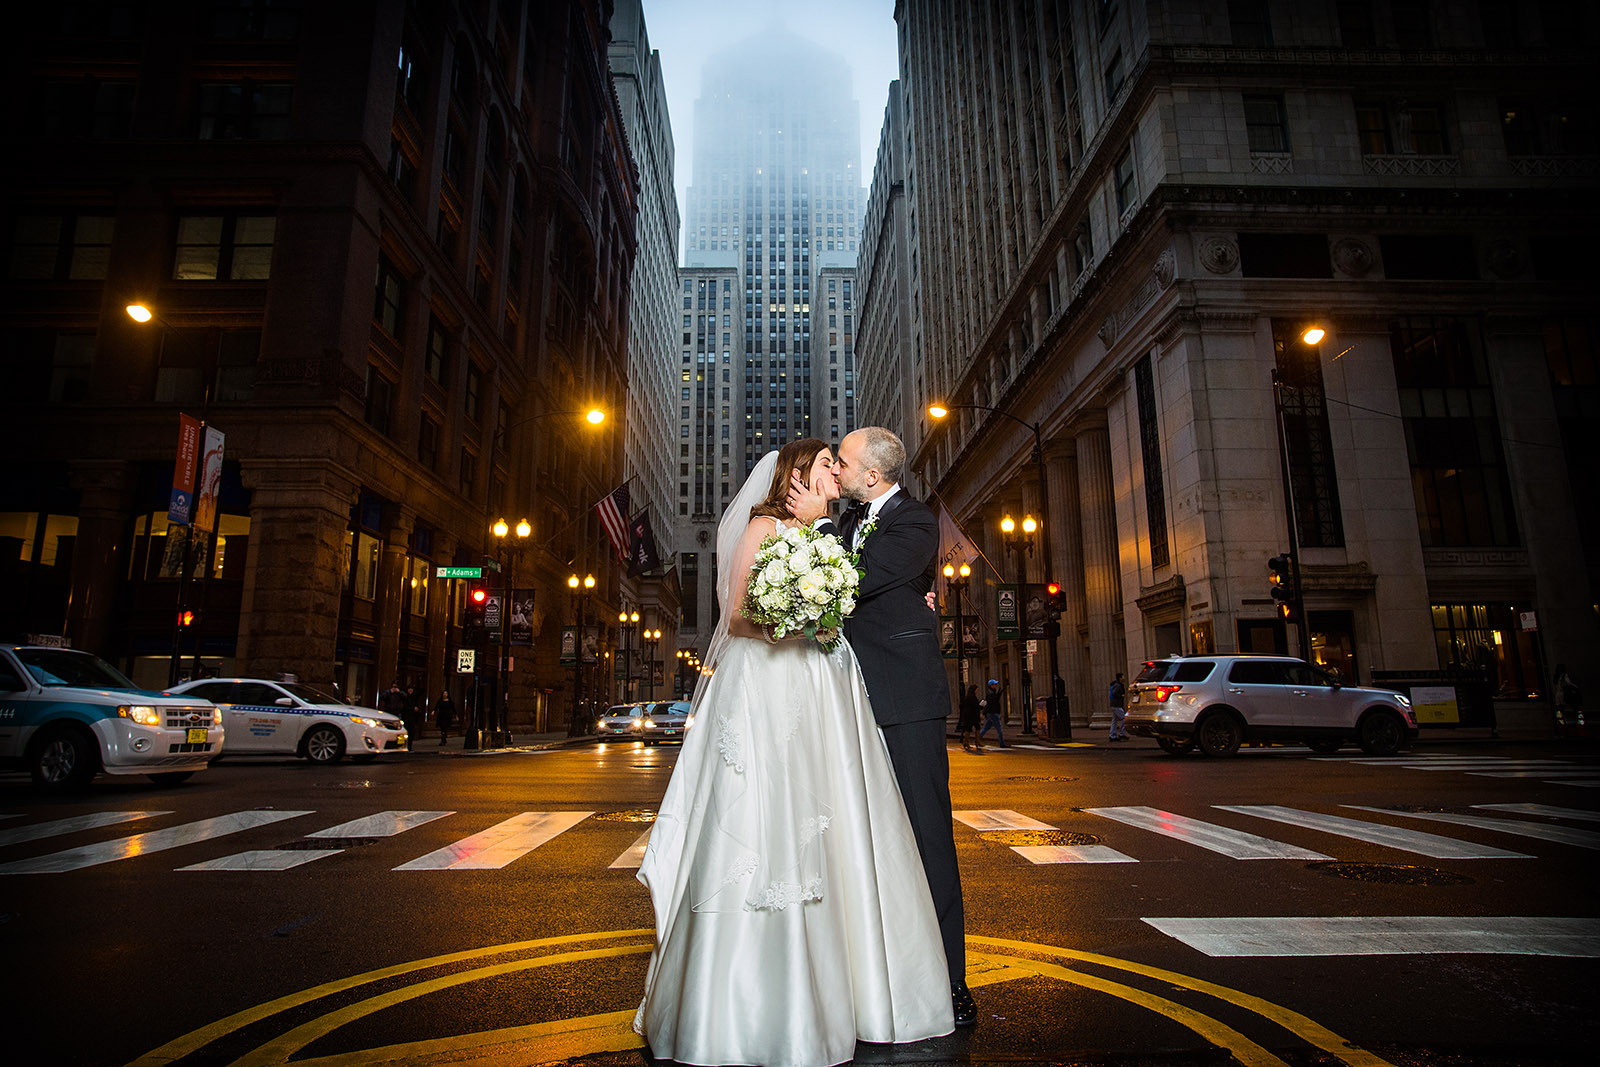 Bride Groom Board of Trade Chicago